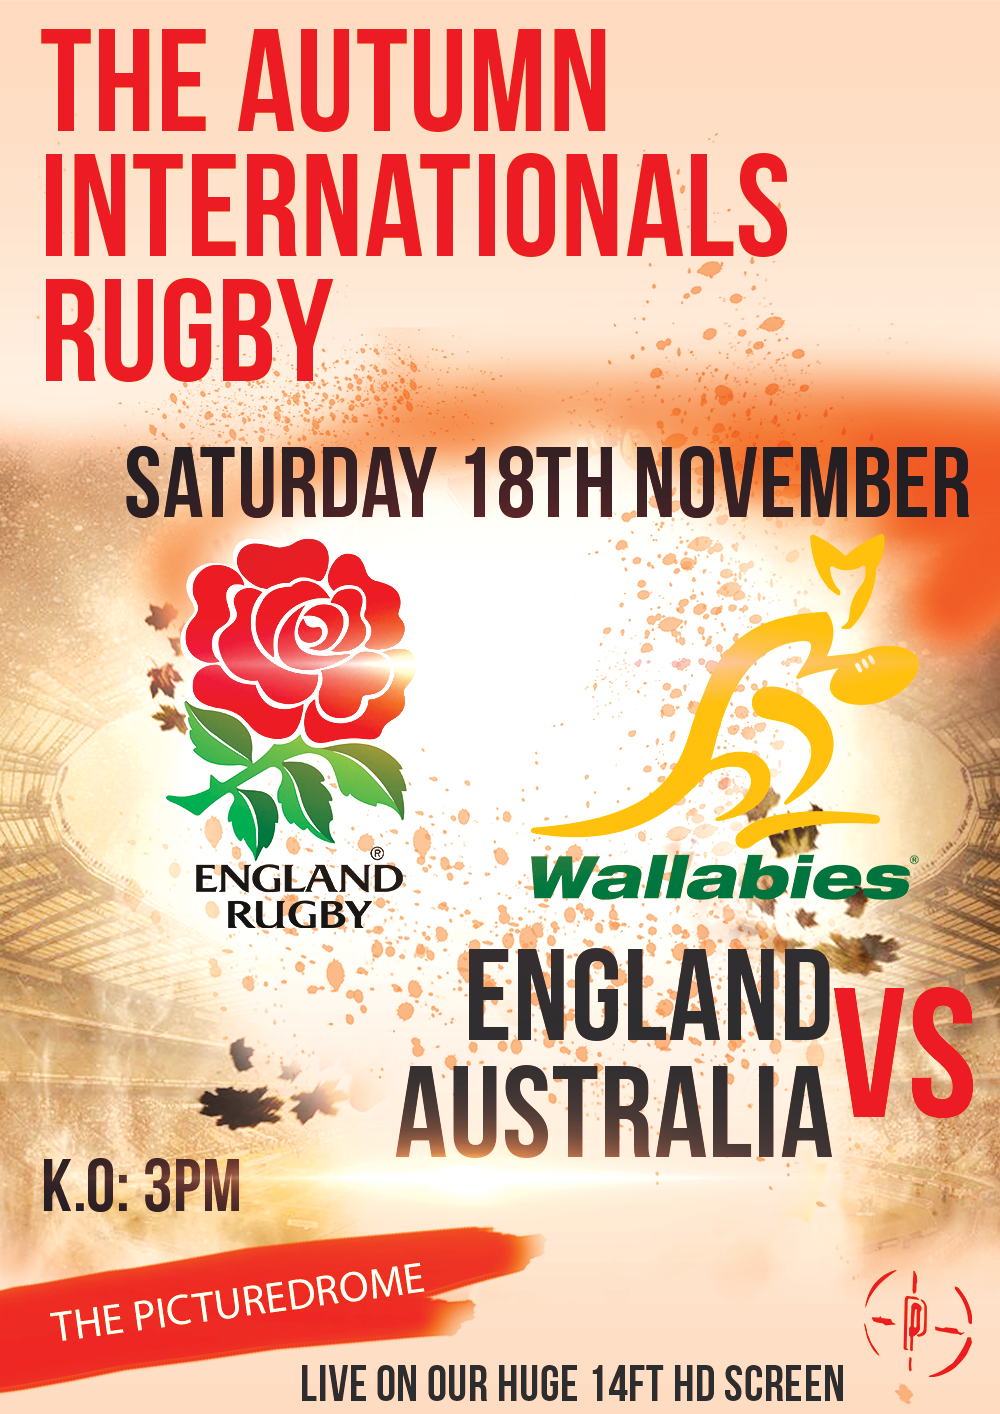 England vs Australia Saturday 18th November Click here for more event info